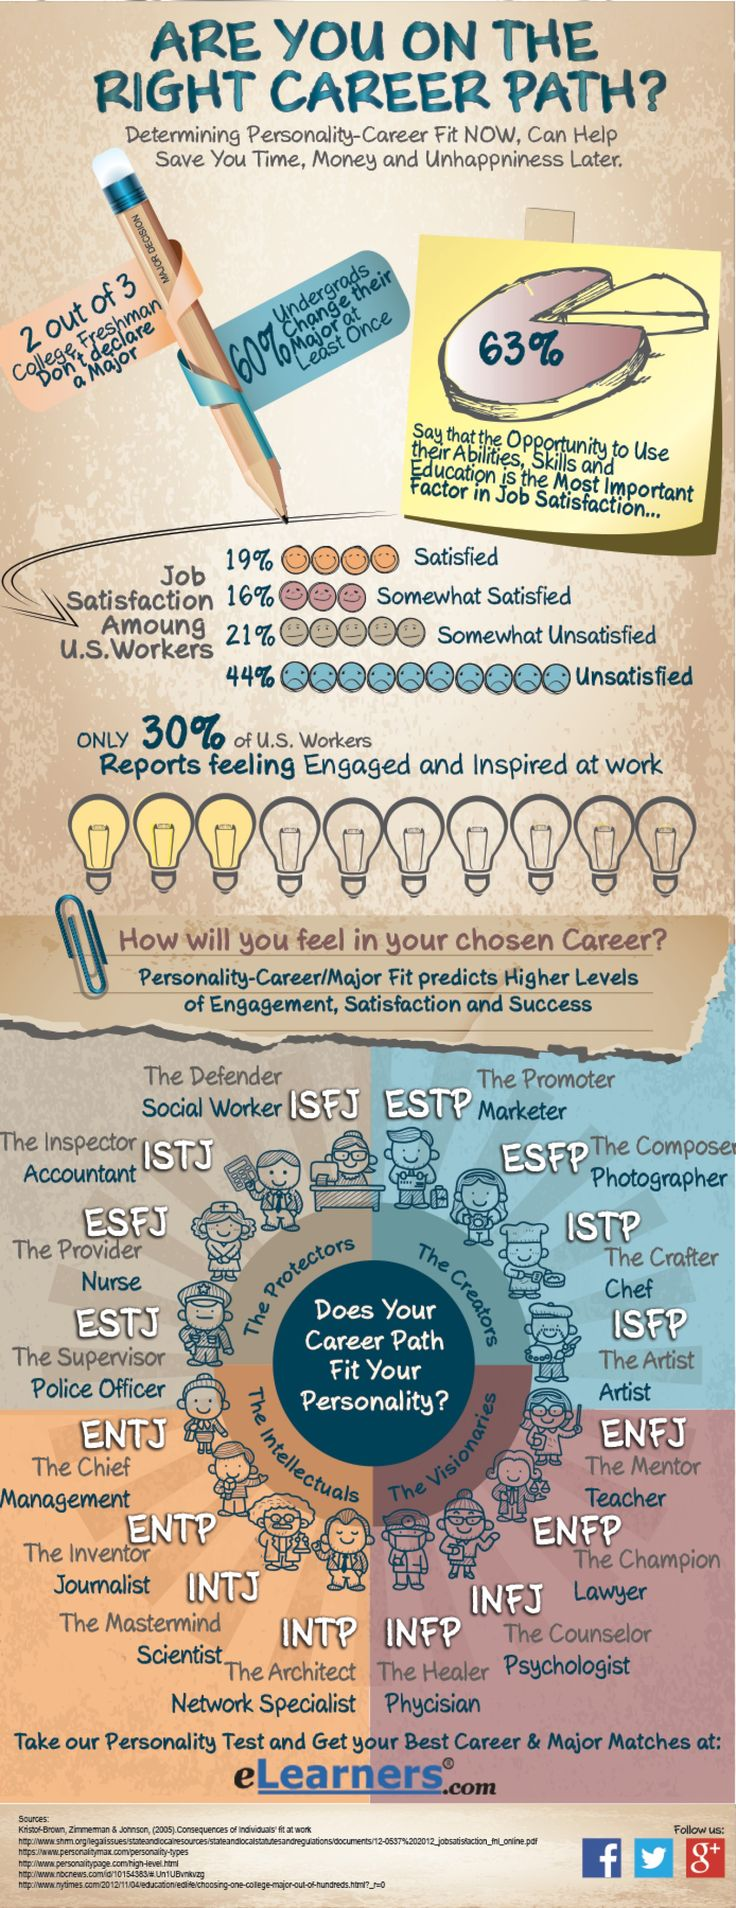 17 best ideas about choosing a career career path 17 best ideas about choosing a career career path career planning and career choices